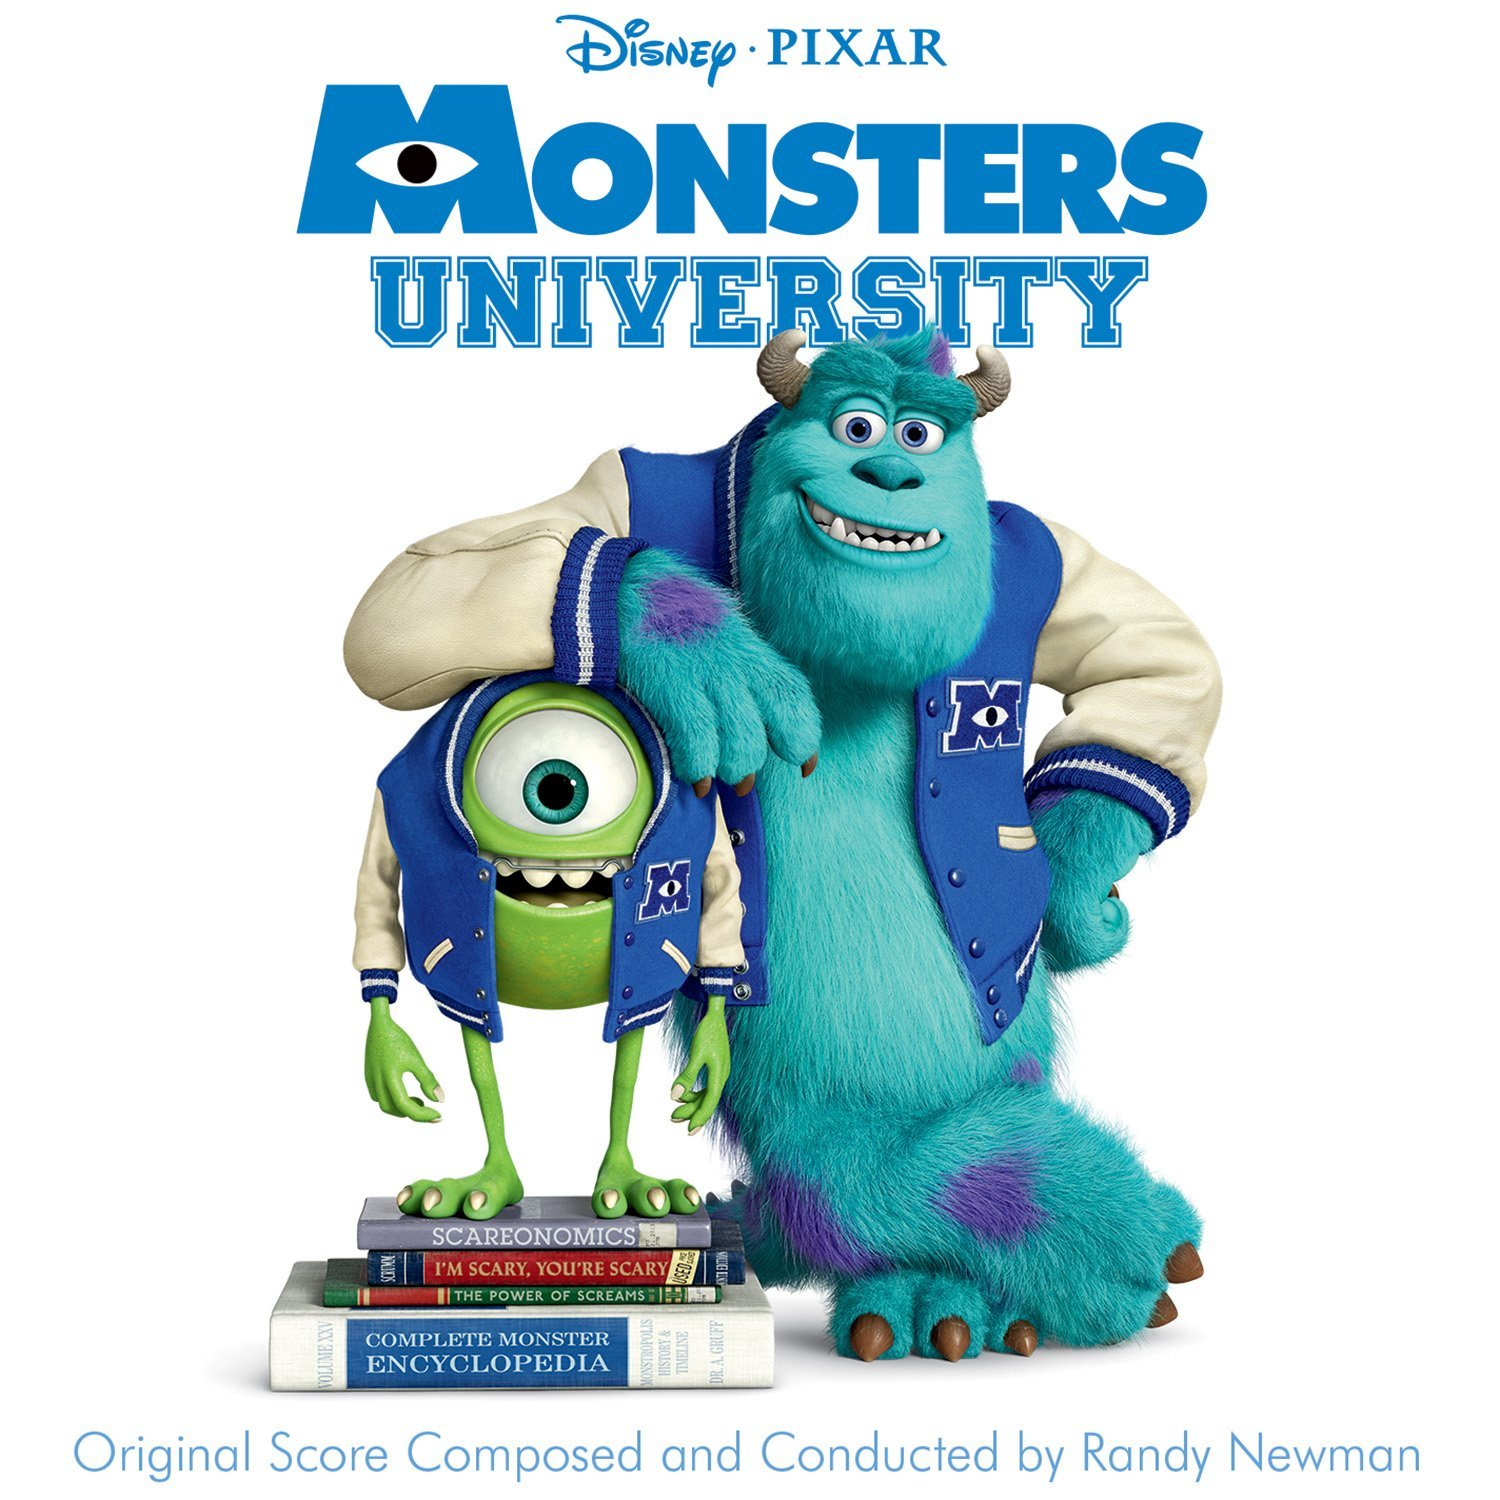 Pixar disney bande originale soundtrack  monstres academy monsters university